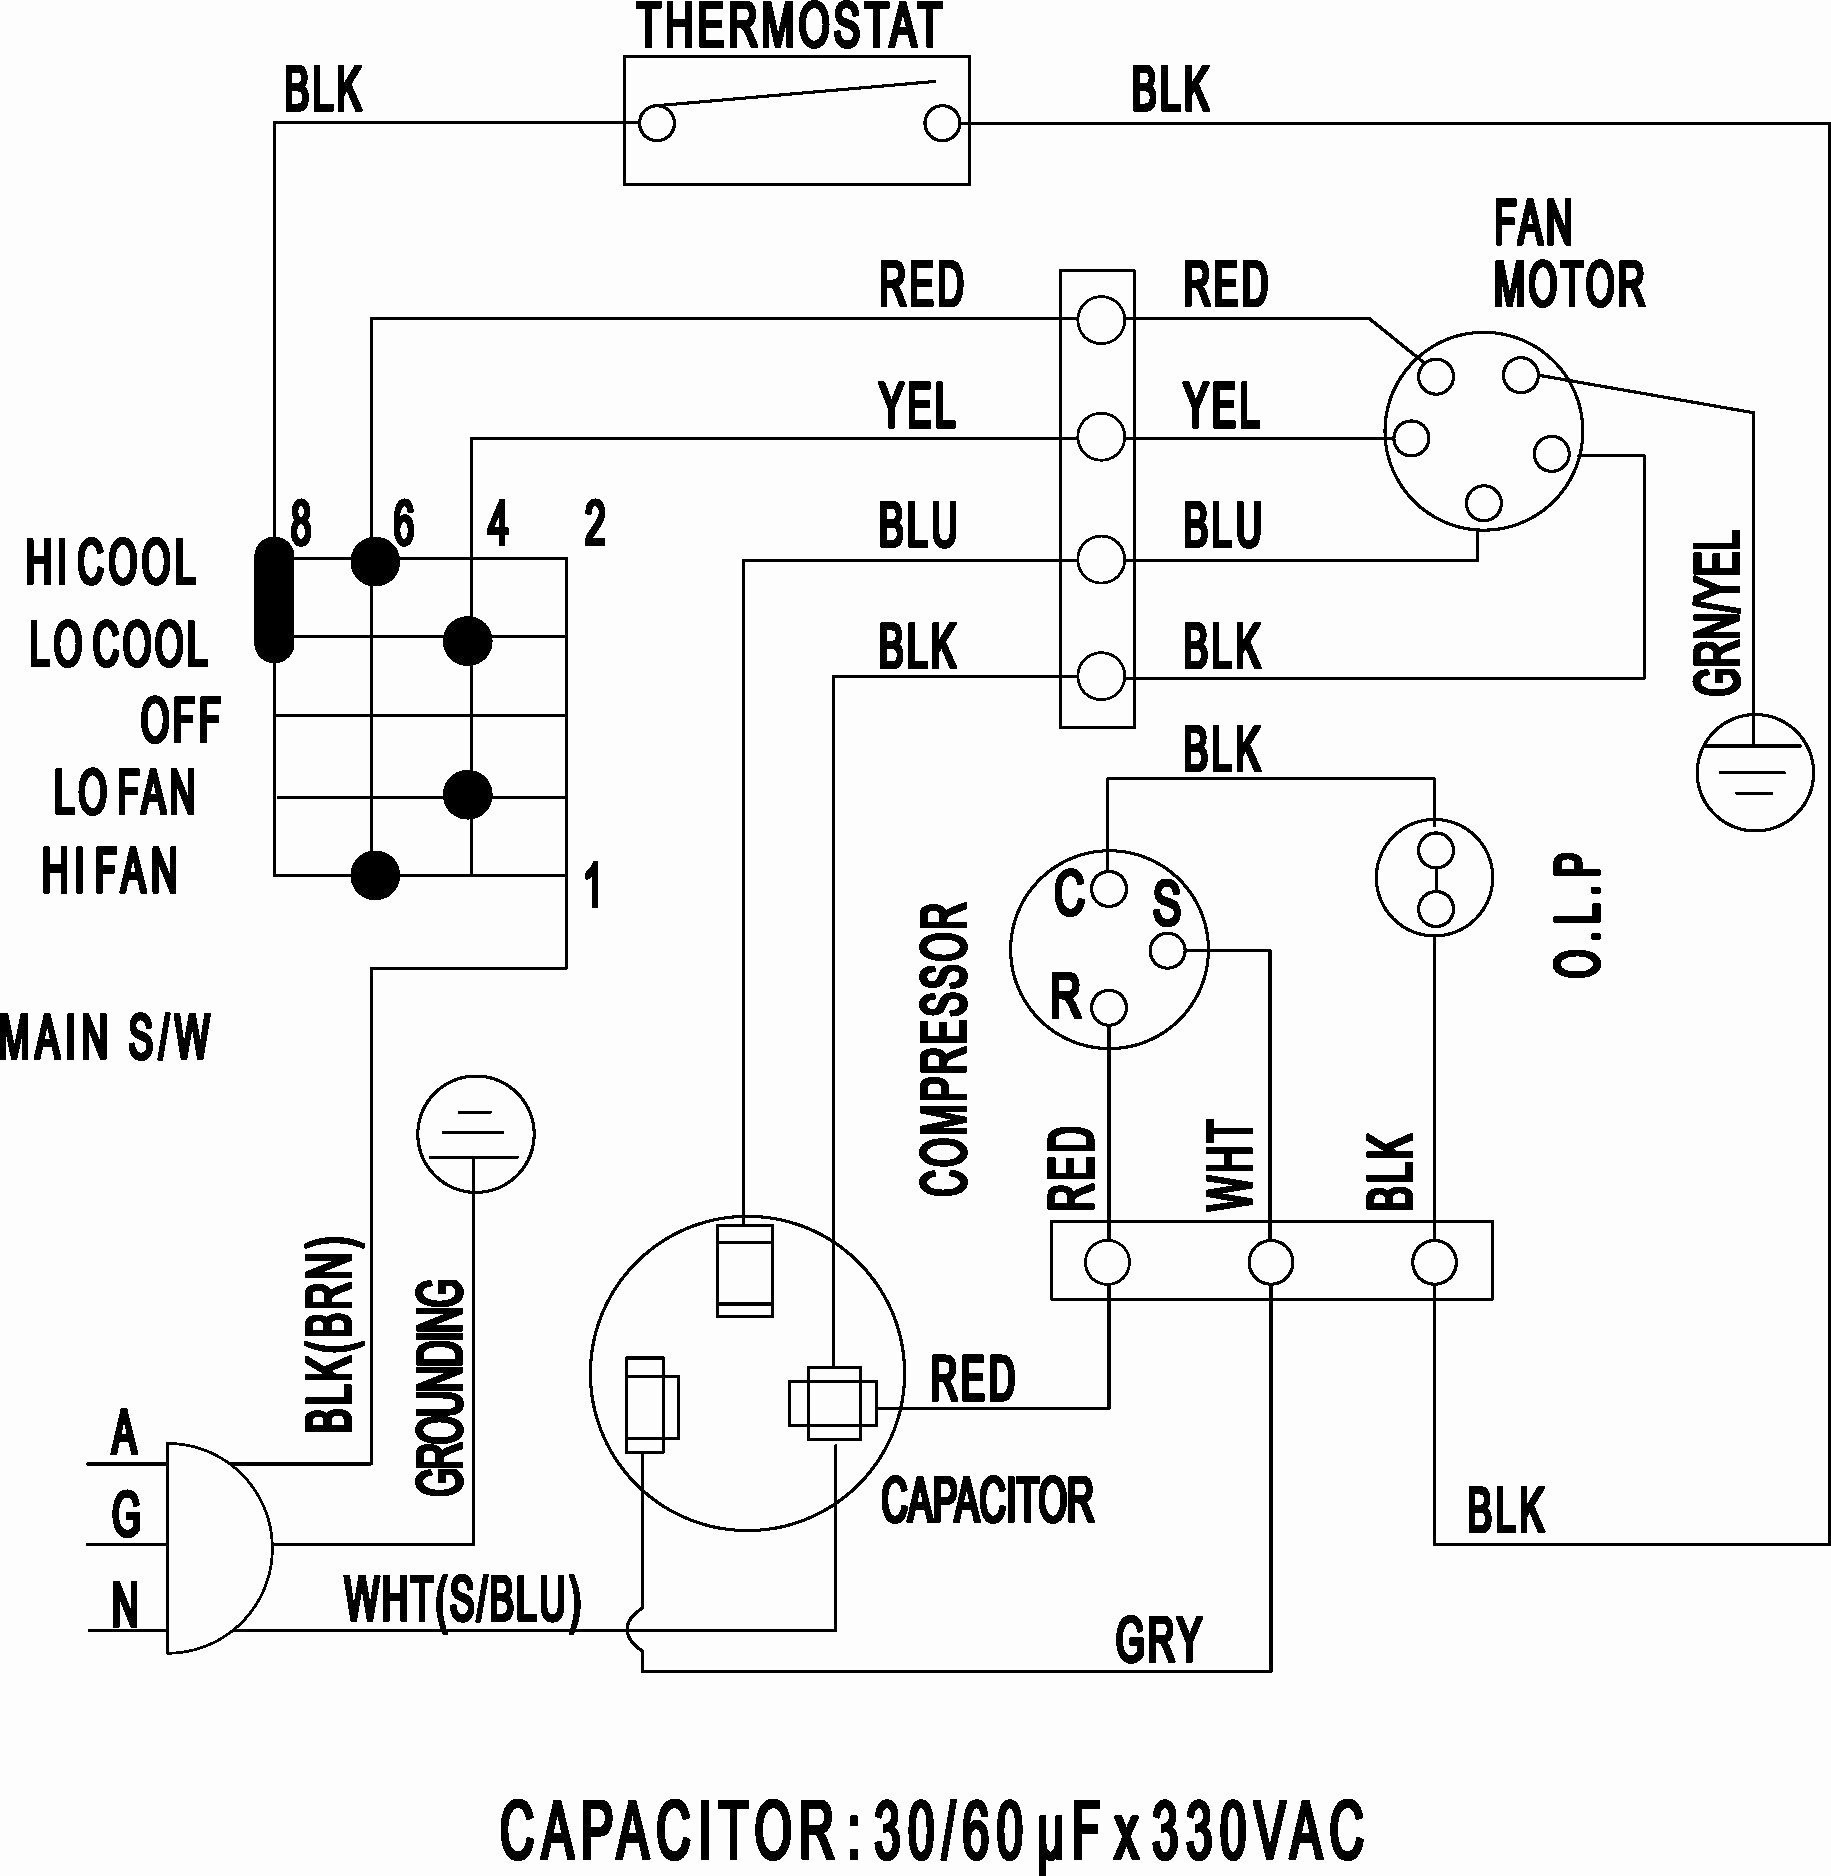 Wiring Diagram Split Type Aircon